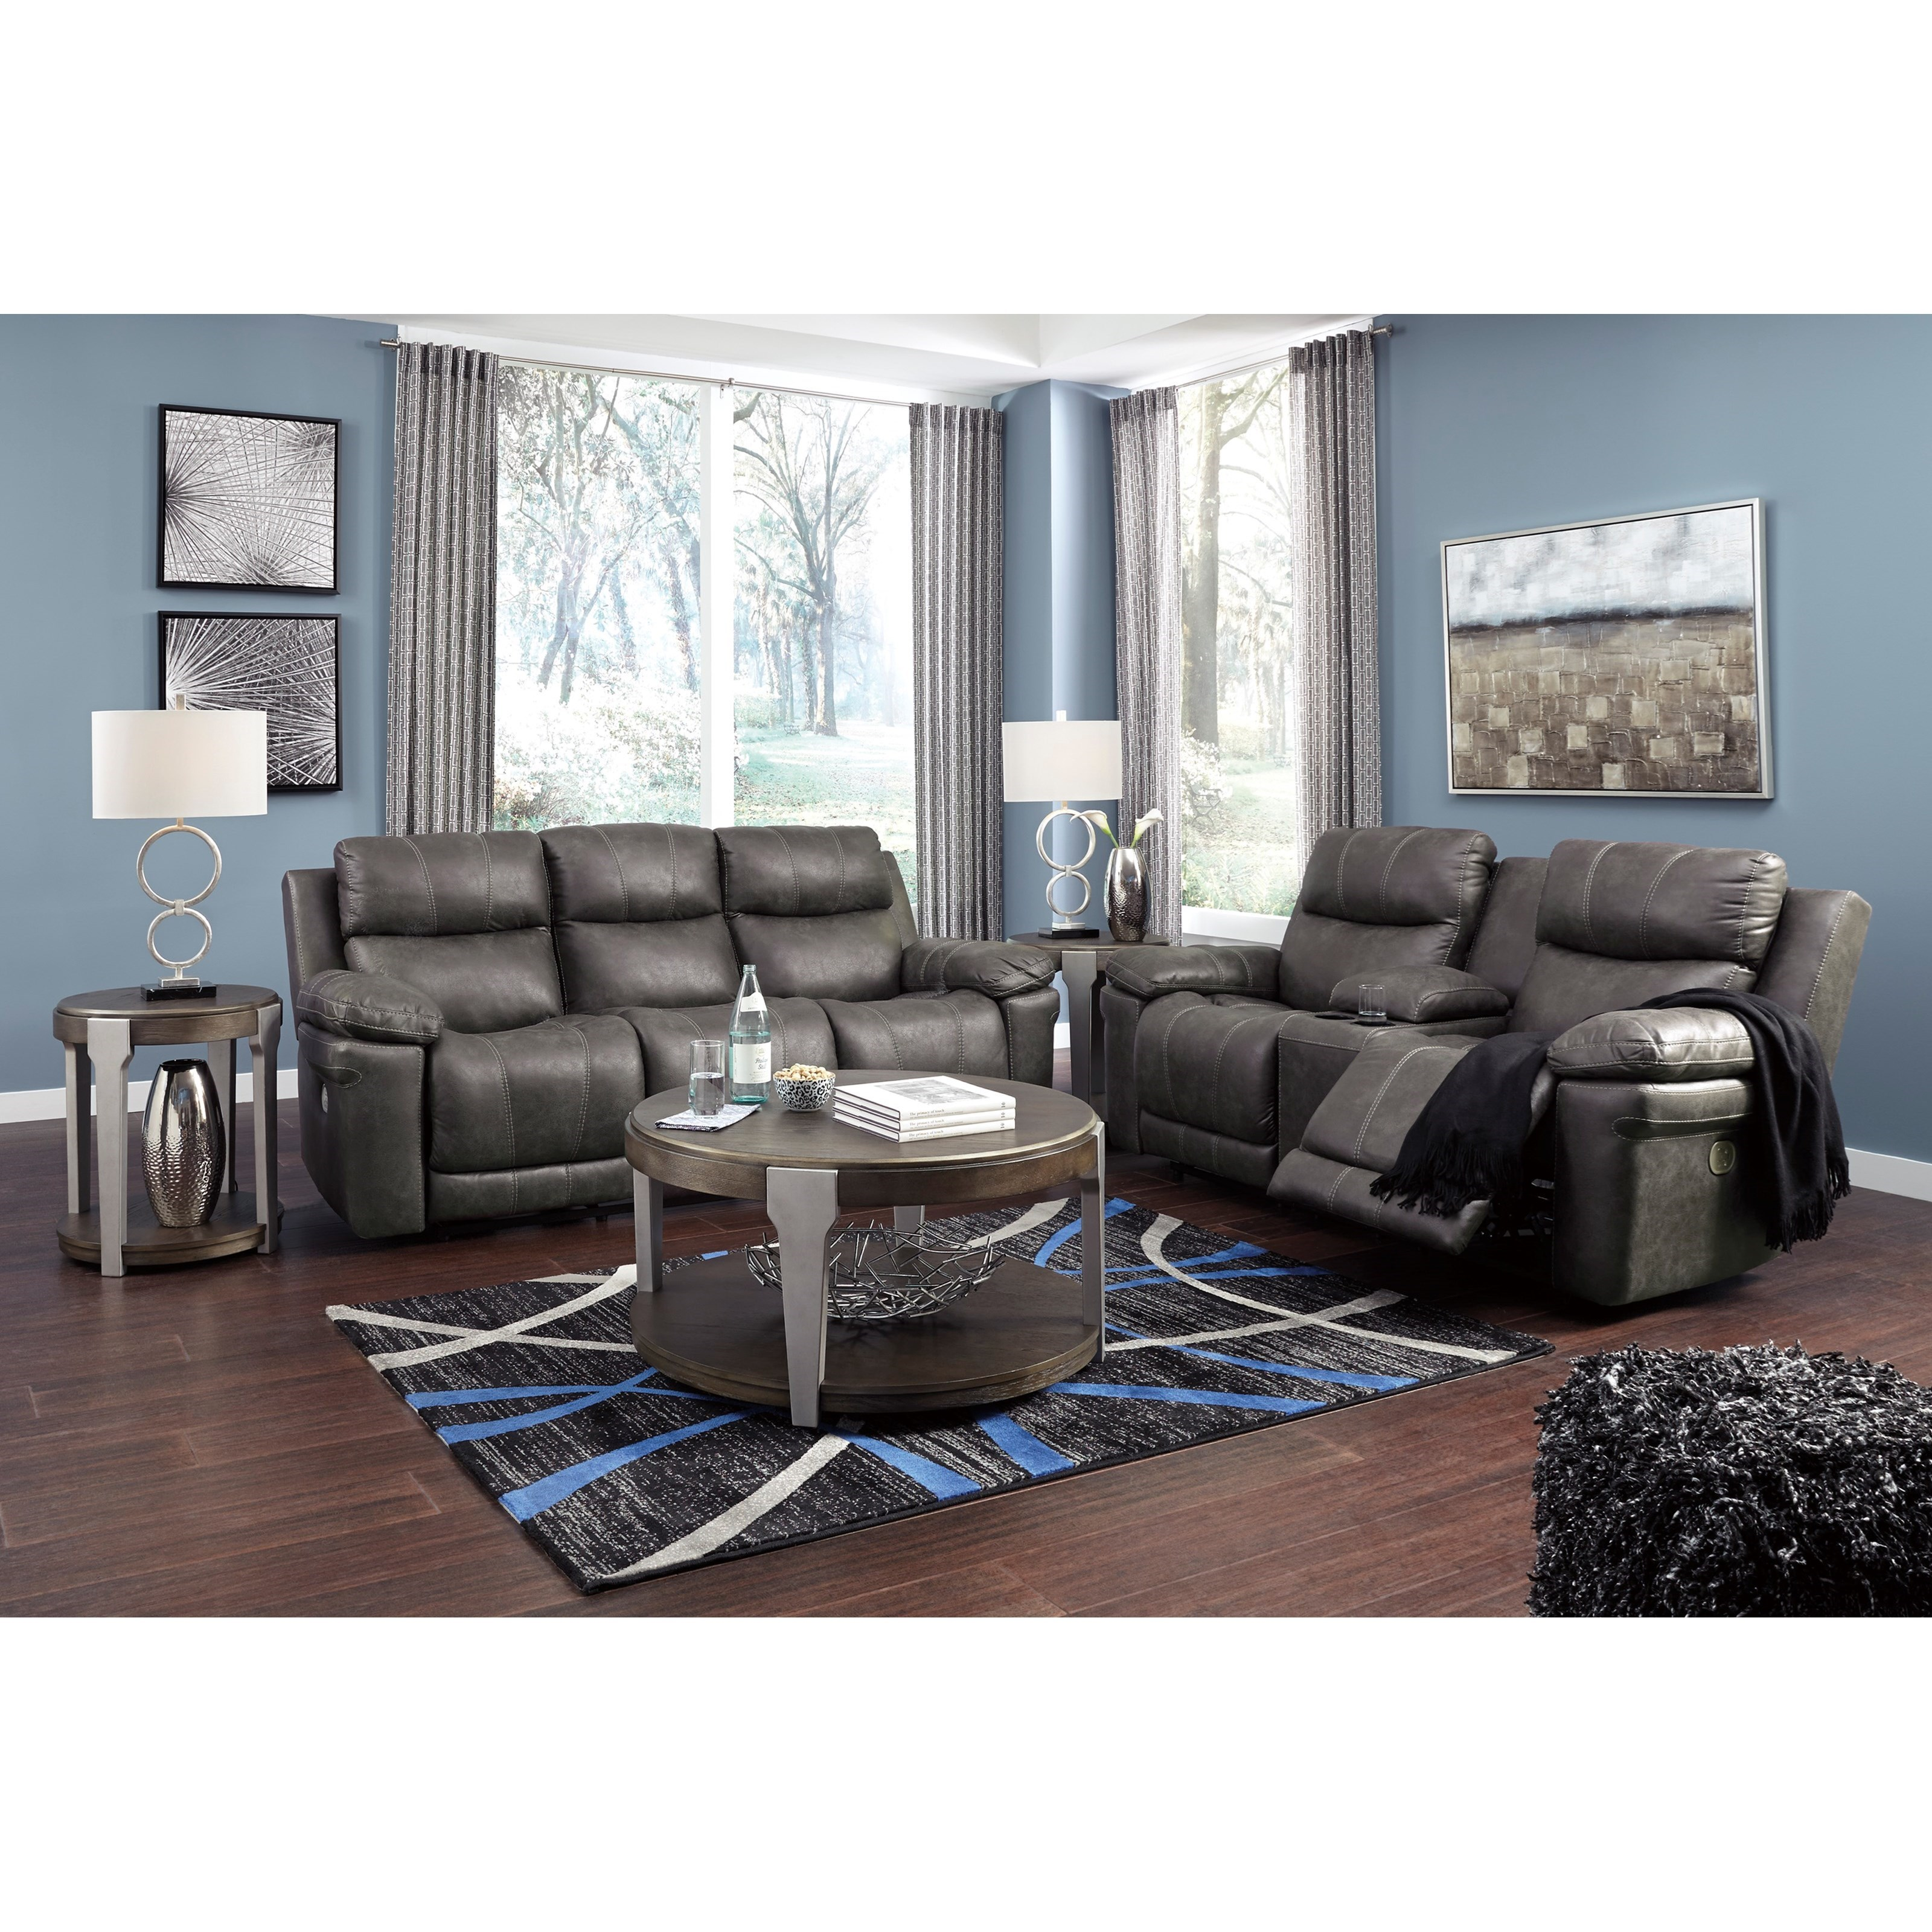 Erlangen Reclining Living Room Group by Signature Design by Ashley at Northeast Factory Direct